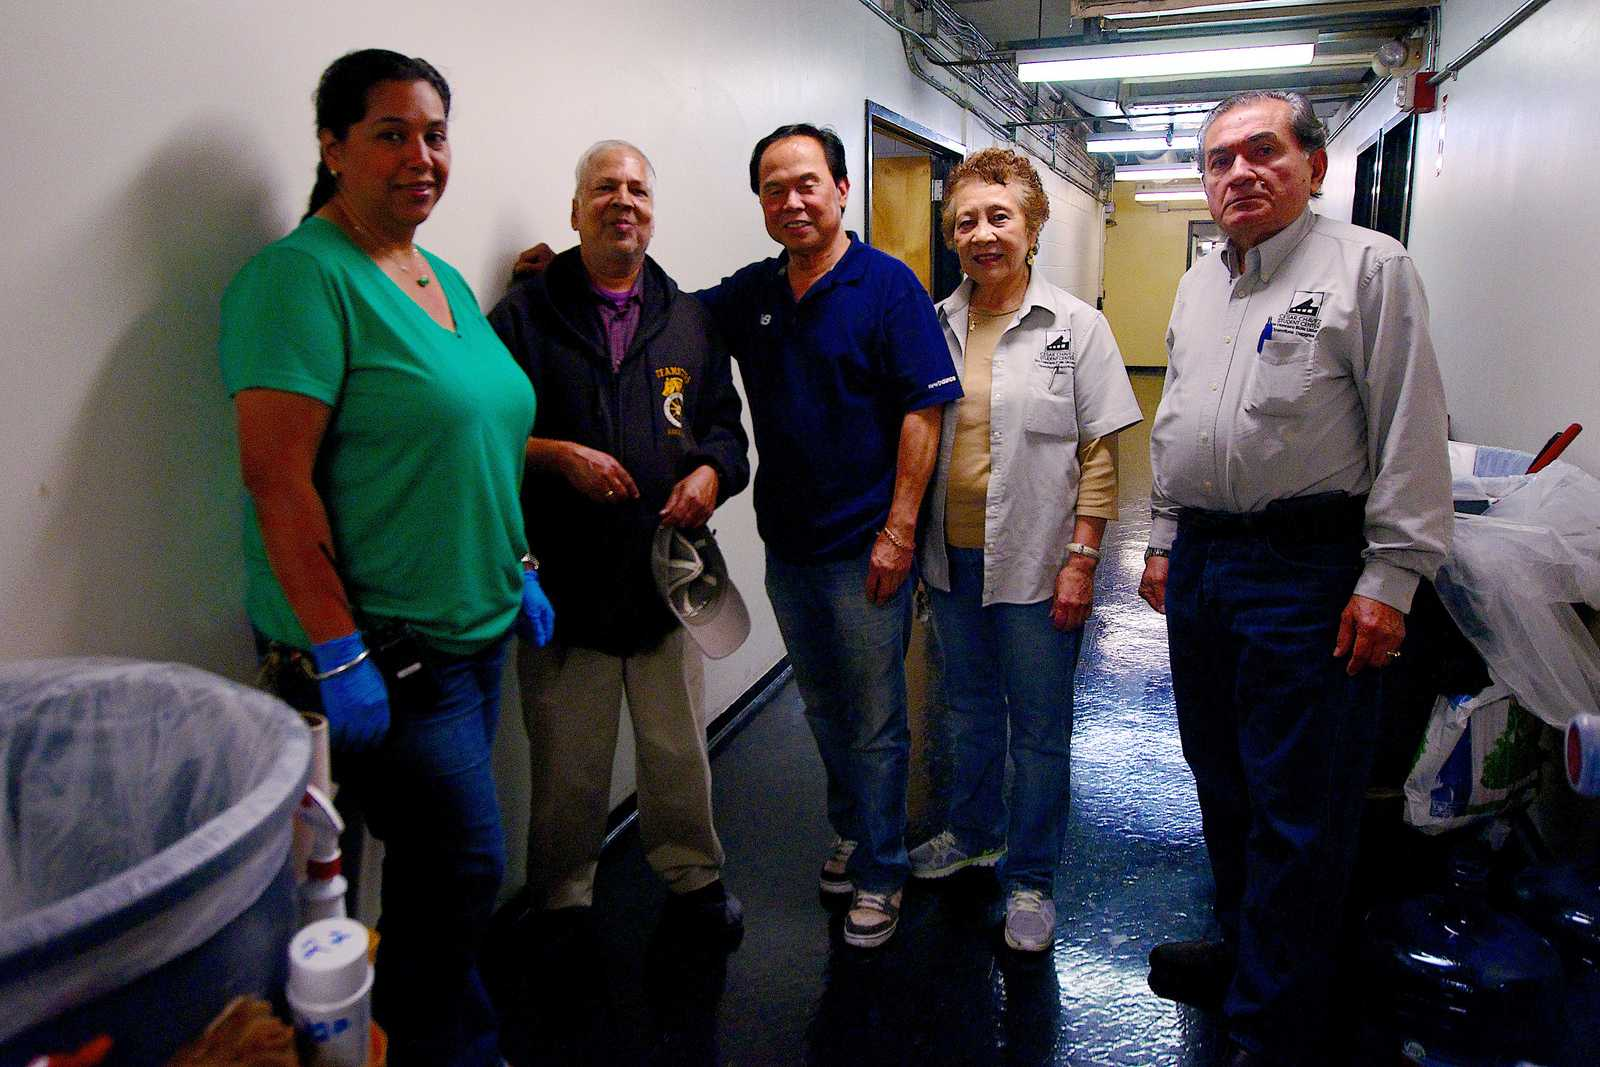 Erika Santos, Naresh Mathur, Bernie Carrera, Maria Suarez and Carlos Rosales pose for a photo in the basement of Cesar Chavez Wednesday Oct 30, 2013. The unionized custodial staff of Cesar Chavez Student Center are unsure where their union will stand following a campus auxiliary merger. Photo by Kate O'Neal / Xpress